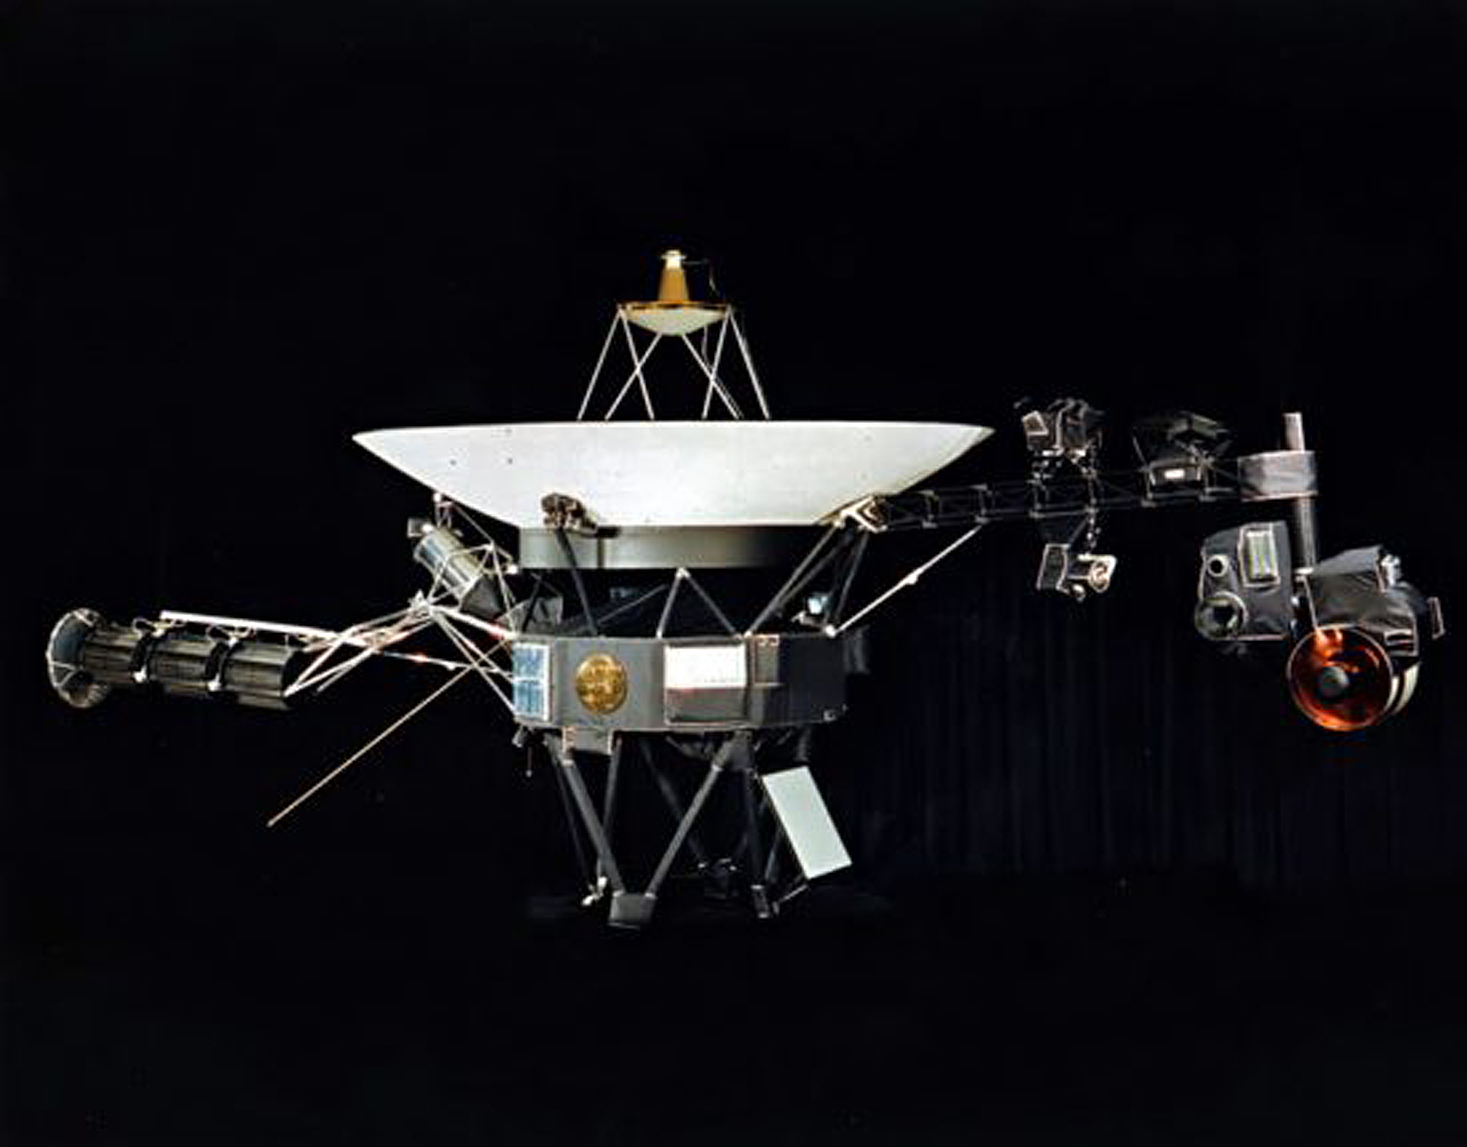 New Horizons, Pioneer, Voyager